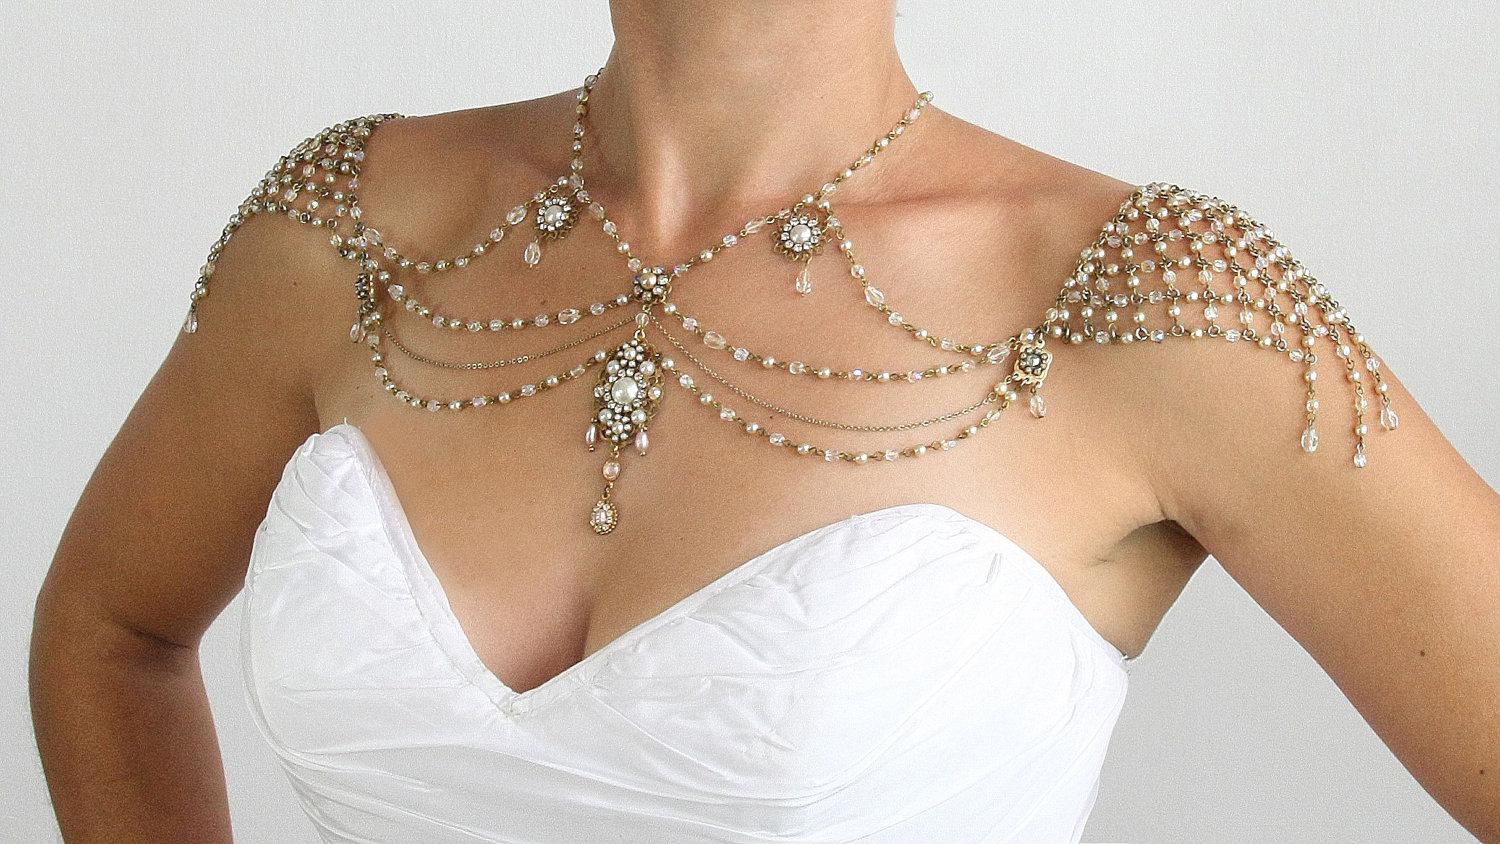 Bridal Jewellery By My Little Bride Weddingdates Co Uk Blog